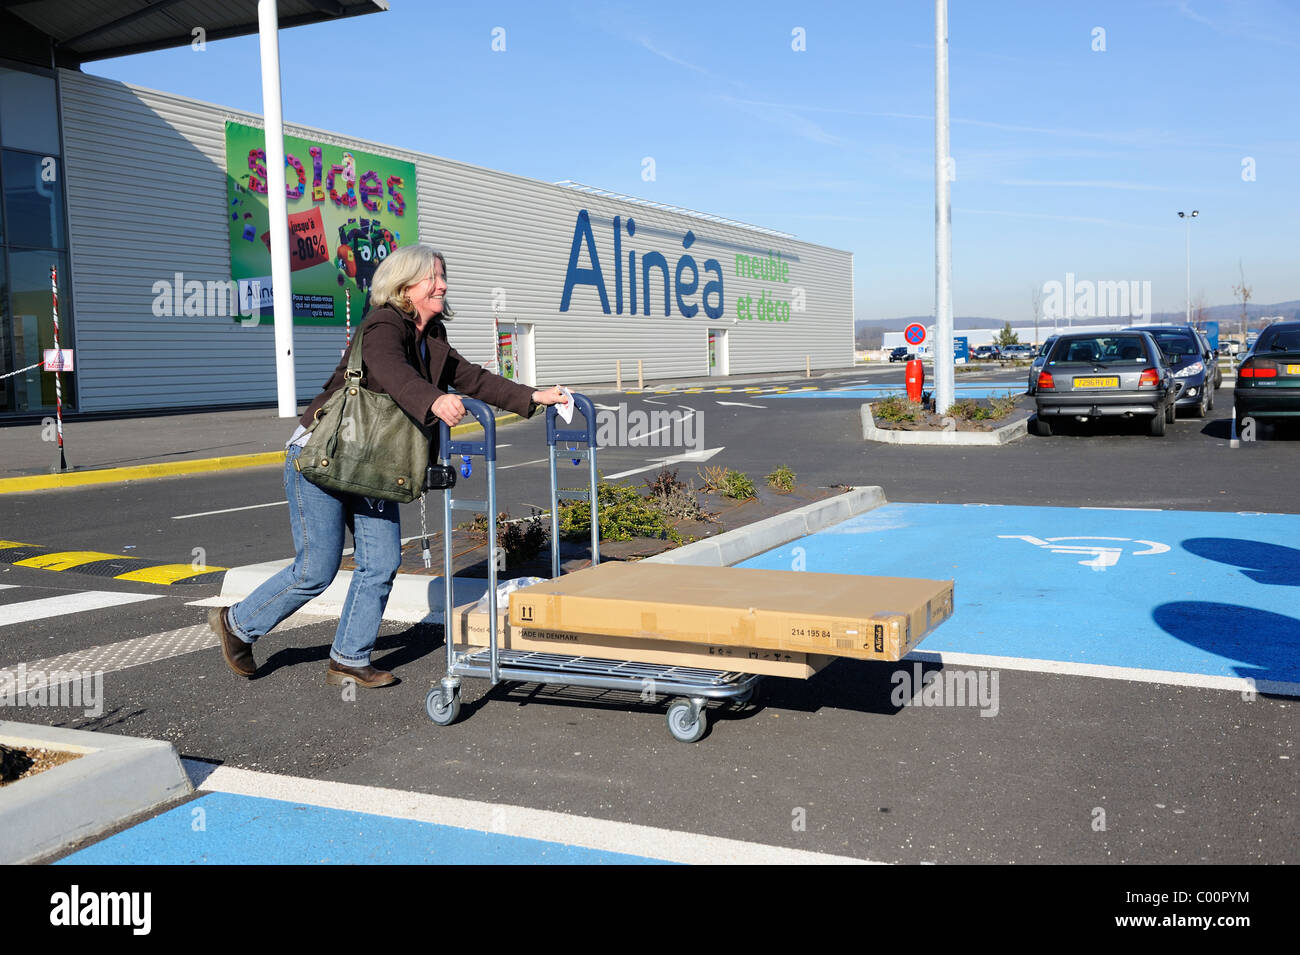 Suspensions Ikea Fr Ikea Trolley Stock Photos Ikea Trolley Stock Images Alamy